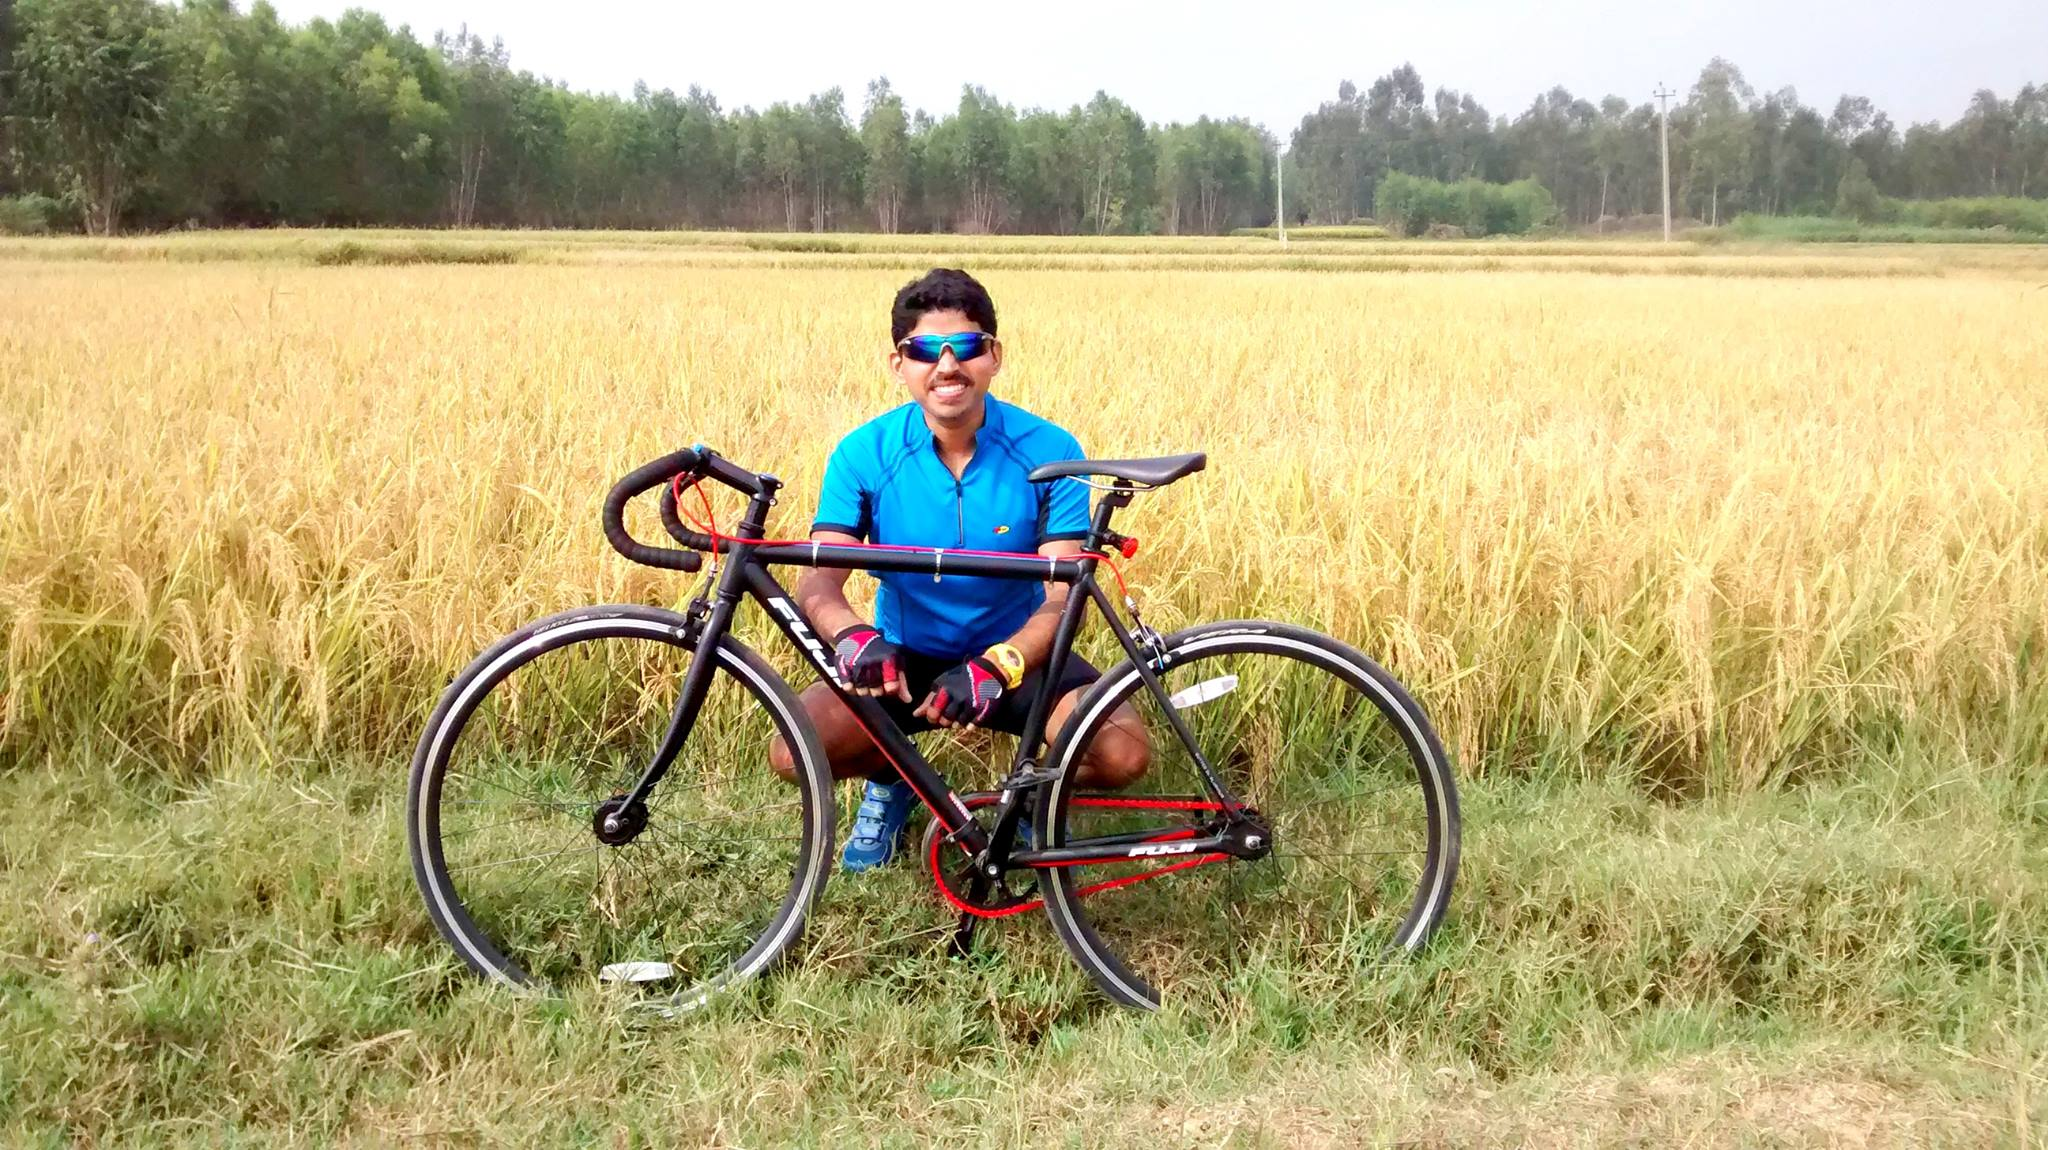 Biju Kunnappada on weekend cycling ride in India with the Fuji Singlespeed bicycle